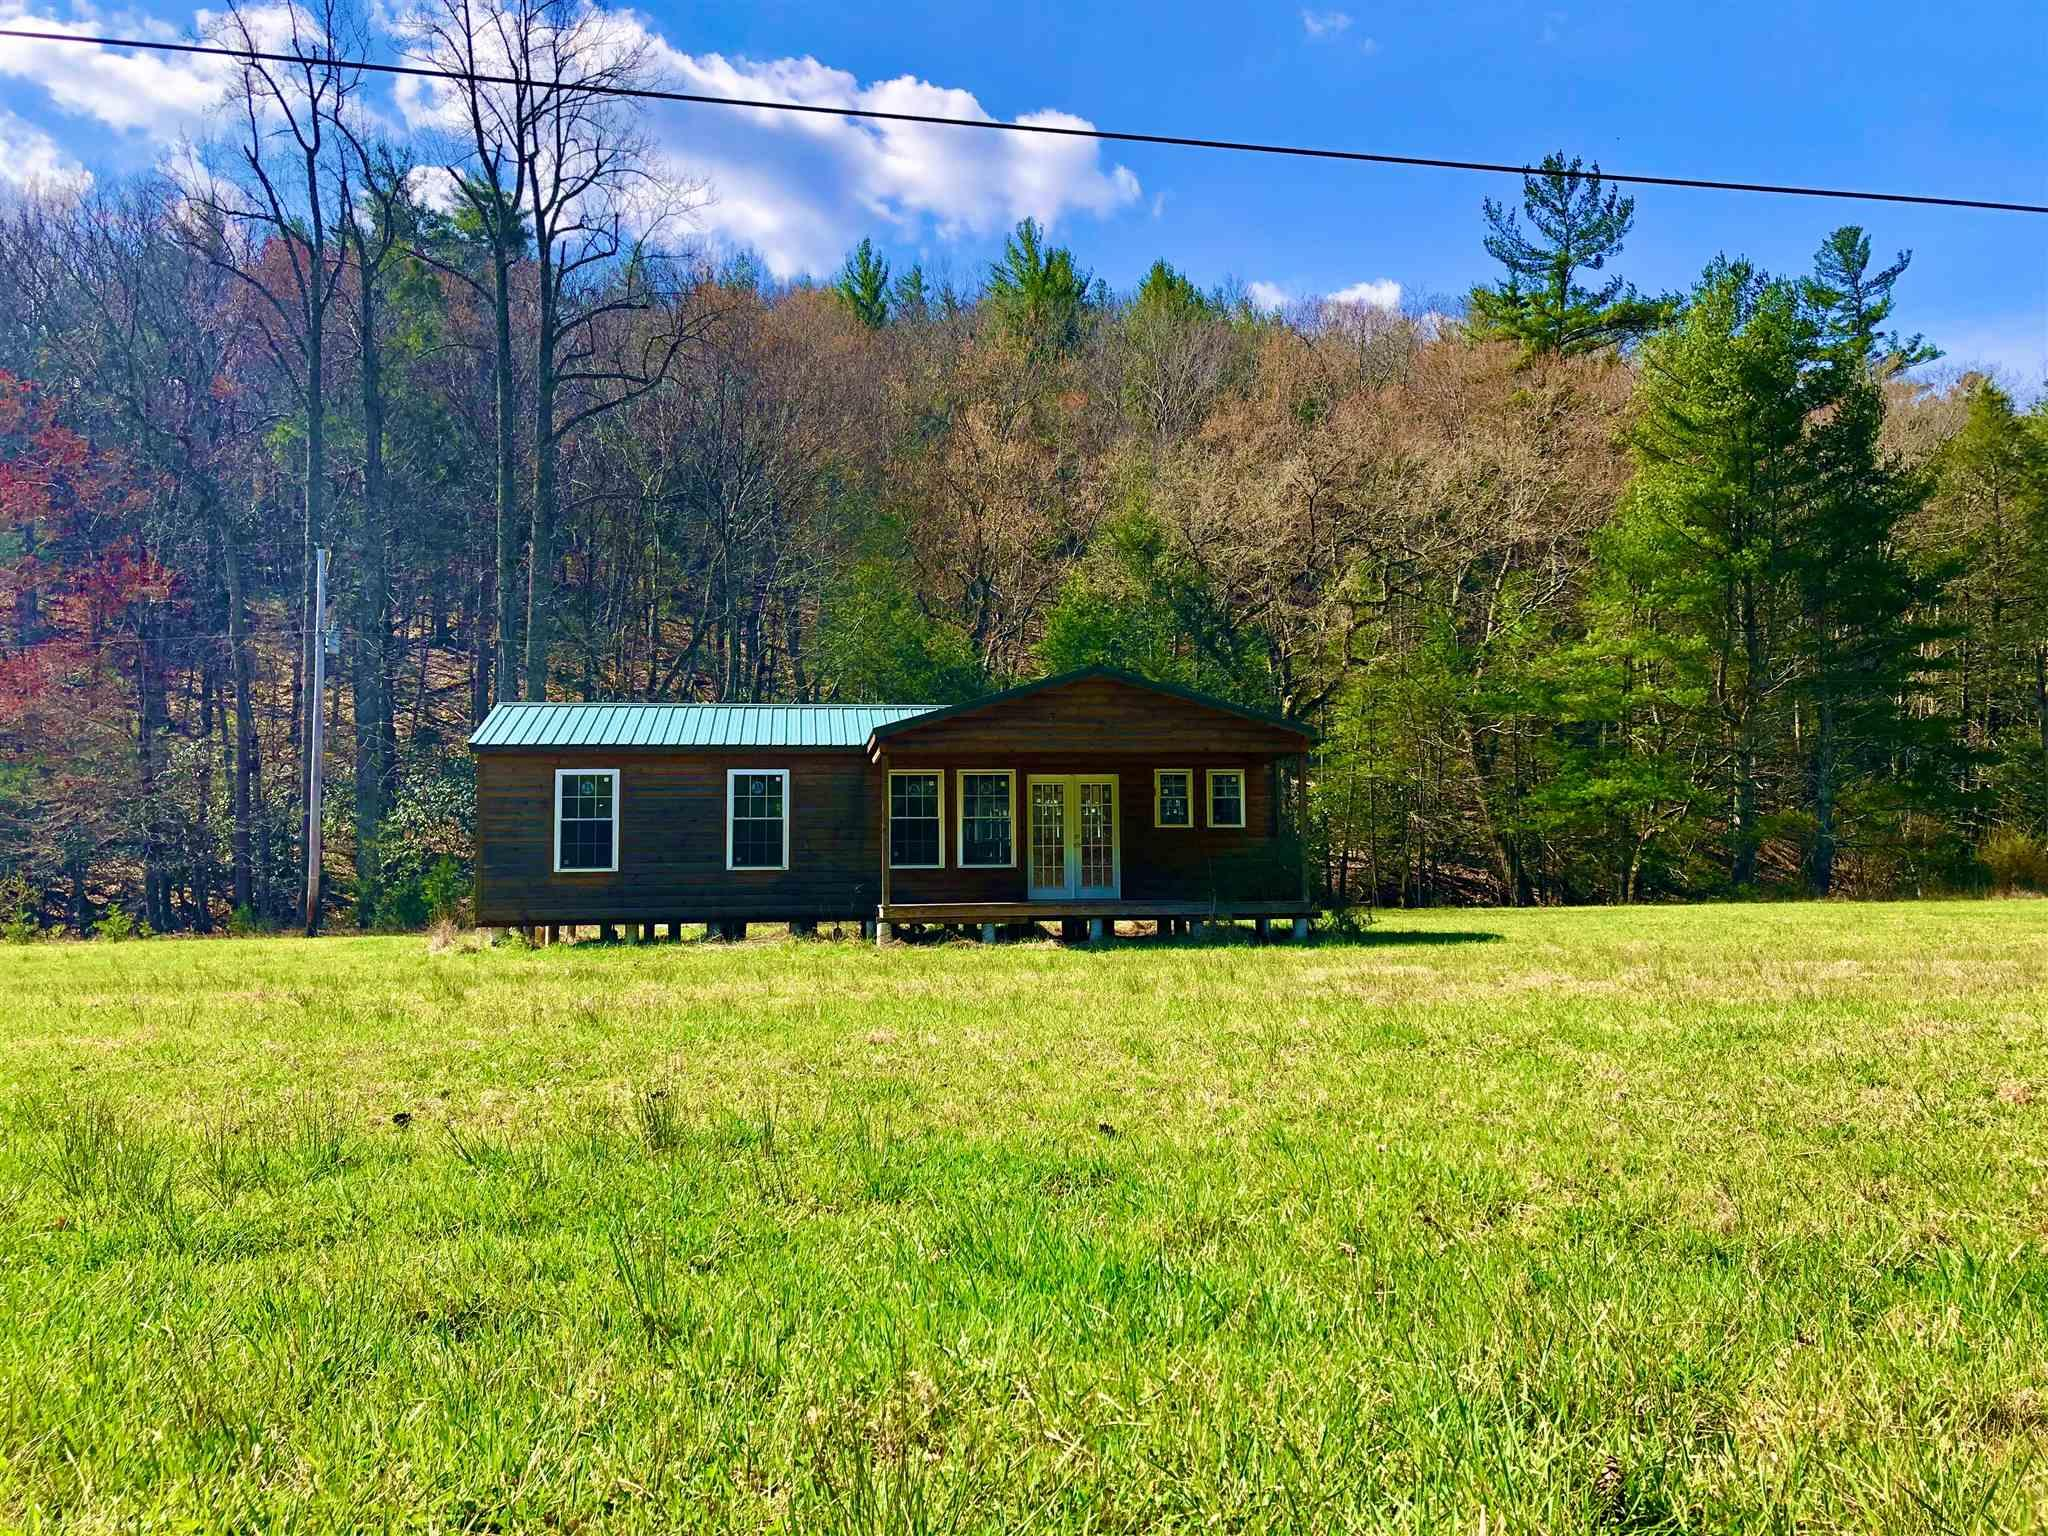 Welcome to Paradise! This property is perfect for your dream home or weekend retreats! Full tract is over 26 acres; approx 6 of those acres are cleared,level, and ready for you to build on! Electric & phone already on property and land has perked! Take in the breathtaking 360° Mountain Views and serene sound of Spur Branch Creek that runs along the property! The remaining wooded acreage offers large timber and is perfect for hunting! Approx. 500sf Newer Cabin conveys with the property. This property is zoned A1 with no restrictions, perfect for horses or livestock! Conveniently located right off of Little Creek Highway, and approx 822ft of road frontage on Spur Branch Rd.